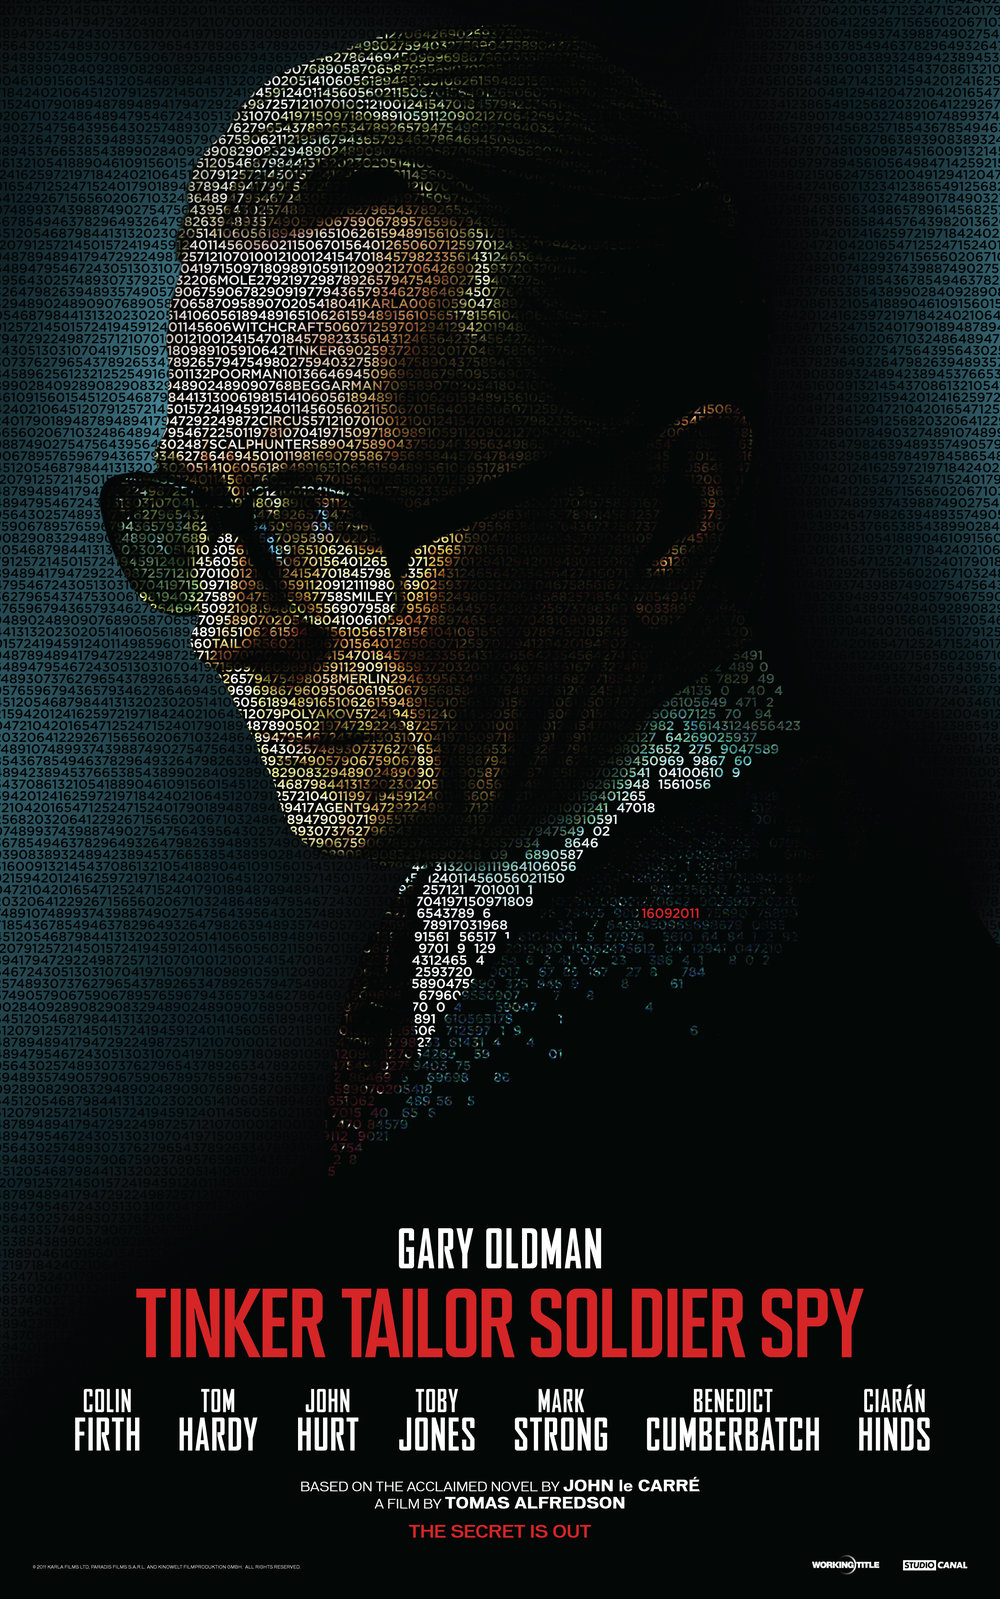 tinker-tailor-soldier-spy-movie-poster-gary-oldman-01.jpg